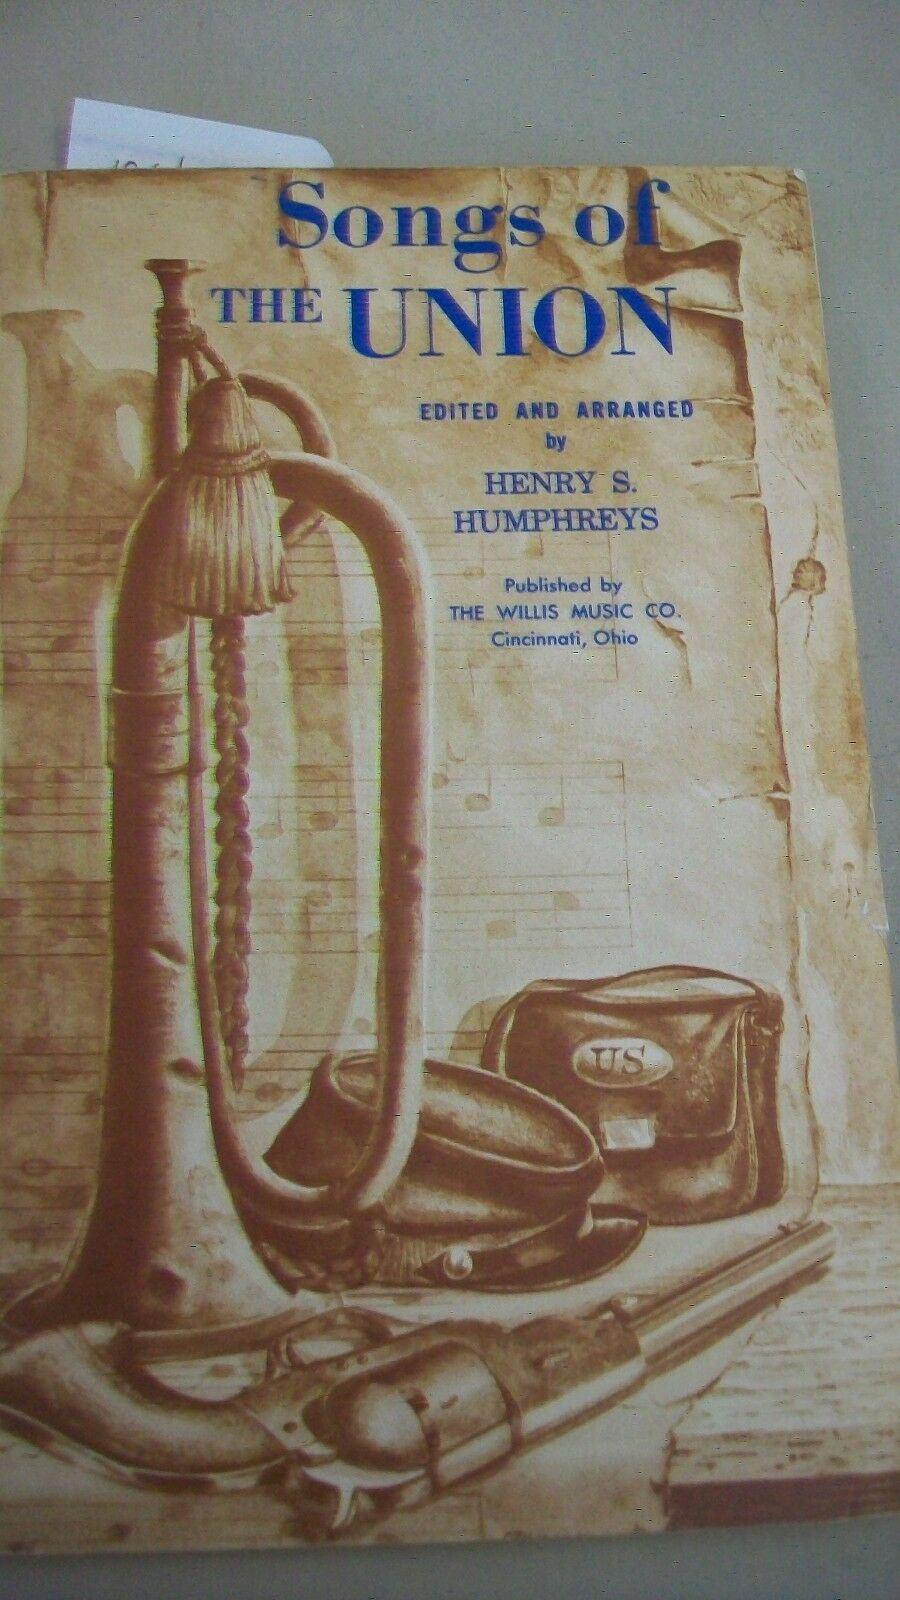 Primary image for Songs of the Union by Henry S. Humphreys 1961 soft cover from Willis Music Co.